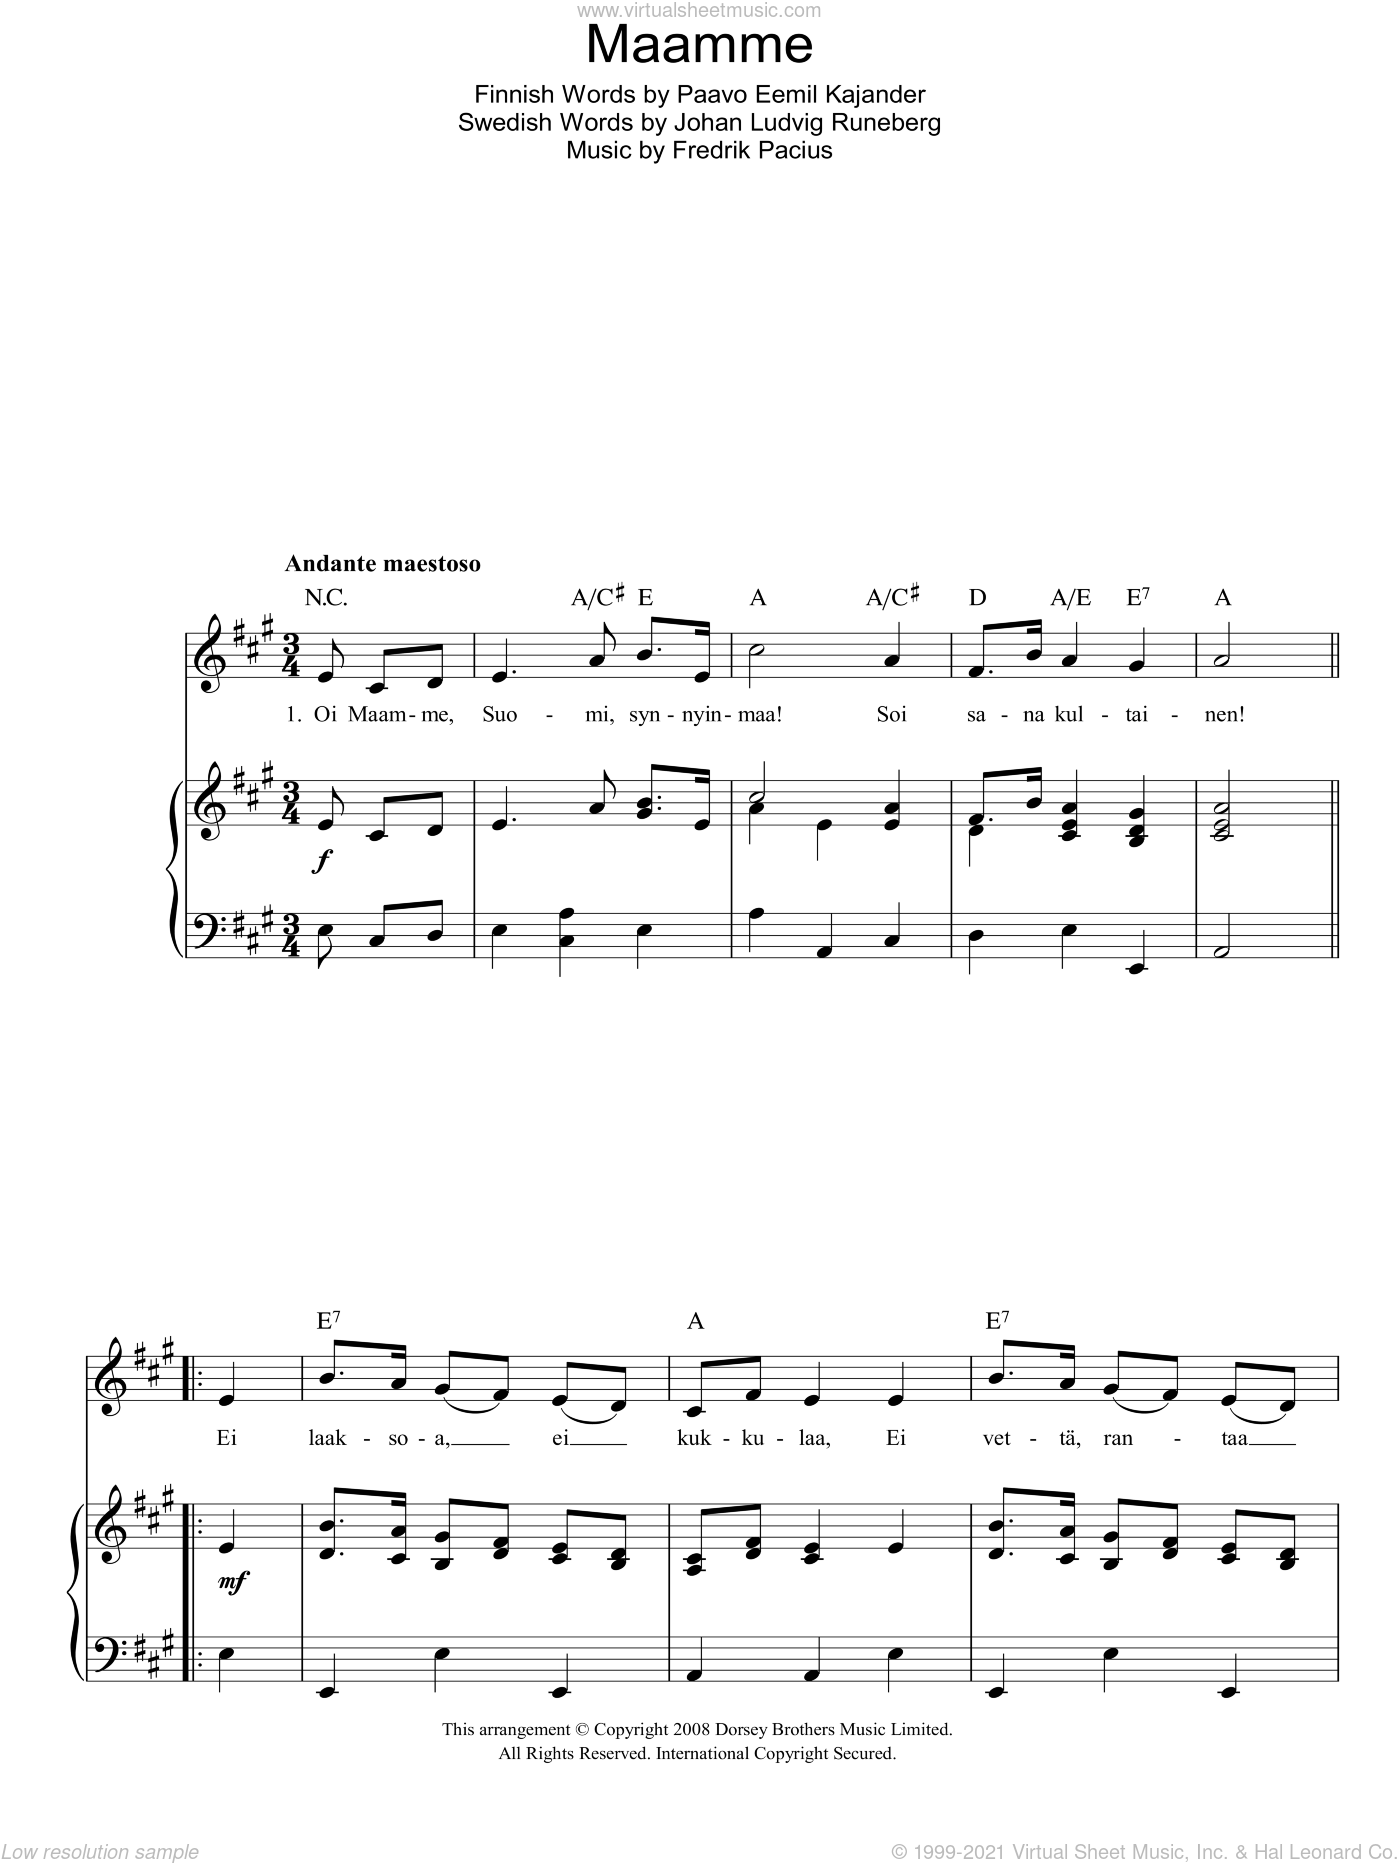 Maamme (Finnish National Anthem) sheet music for voice, piano or guitar by Paavo Eemil Kajander and Johan Ludvig Runeberg